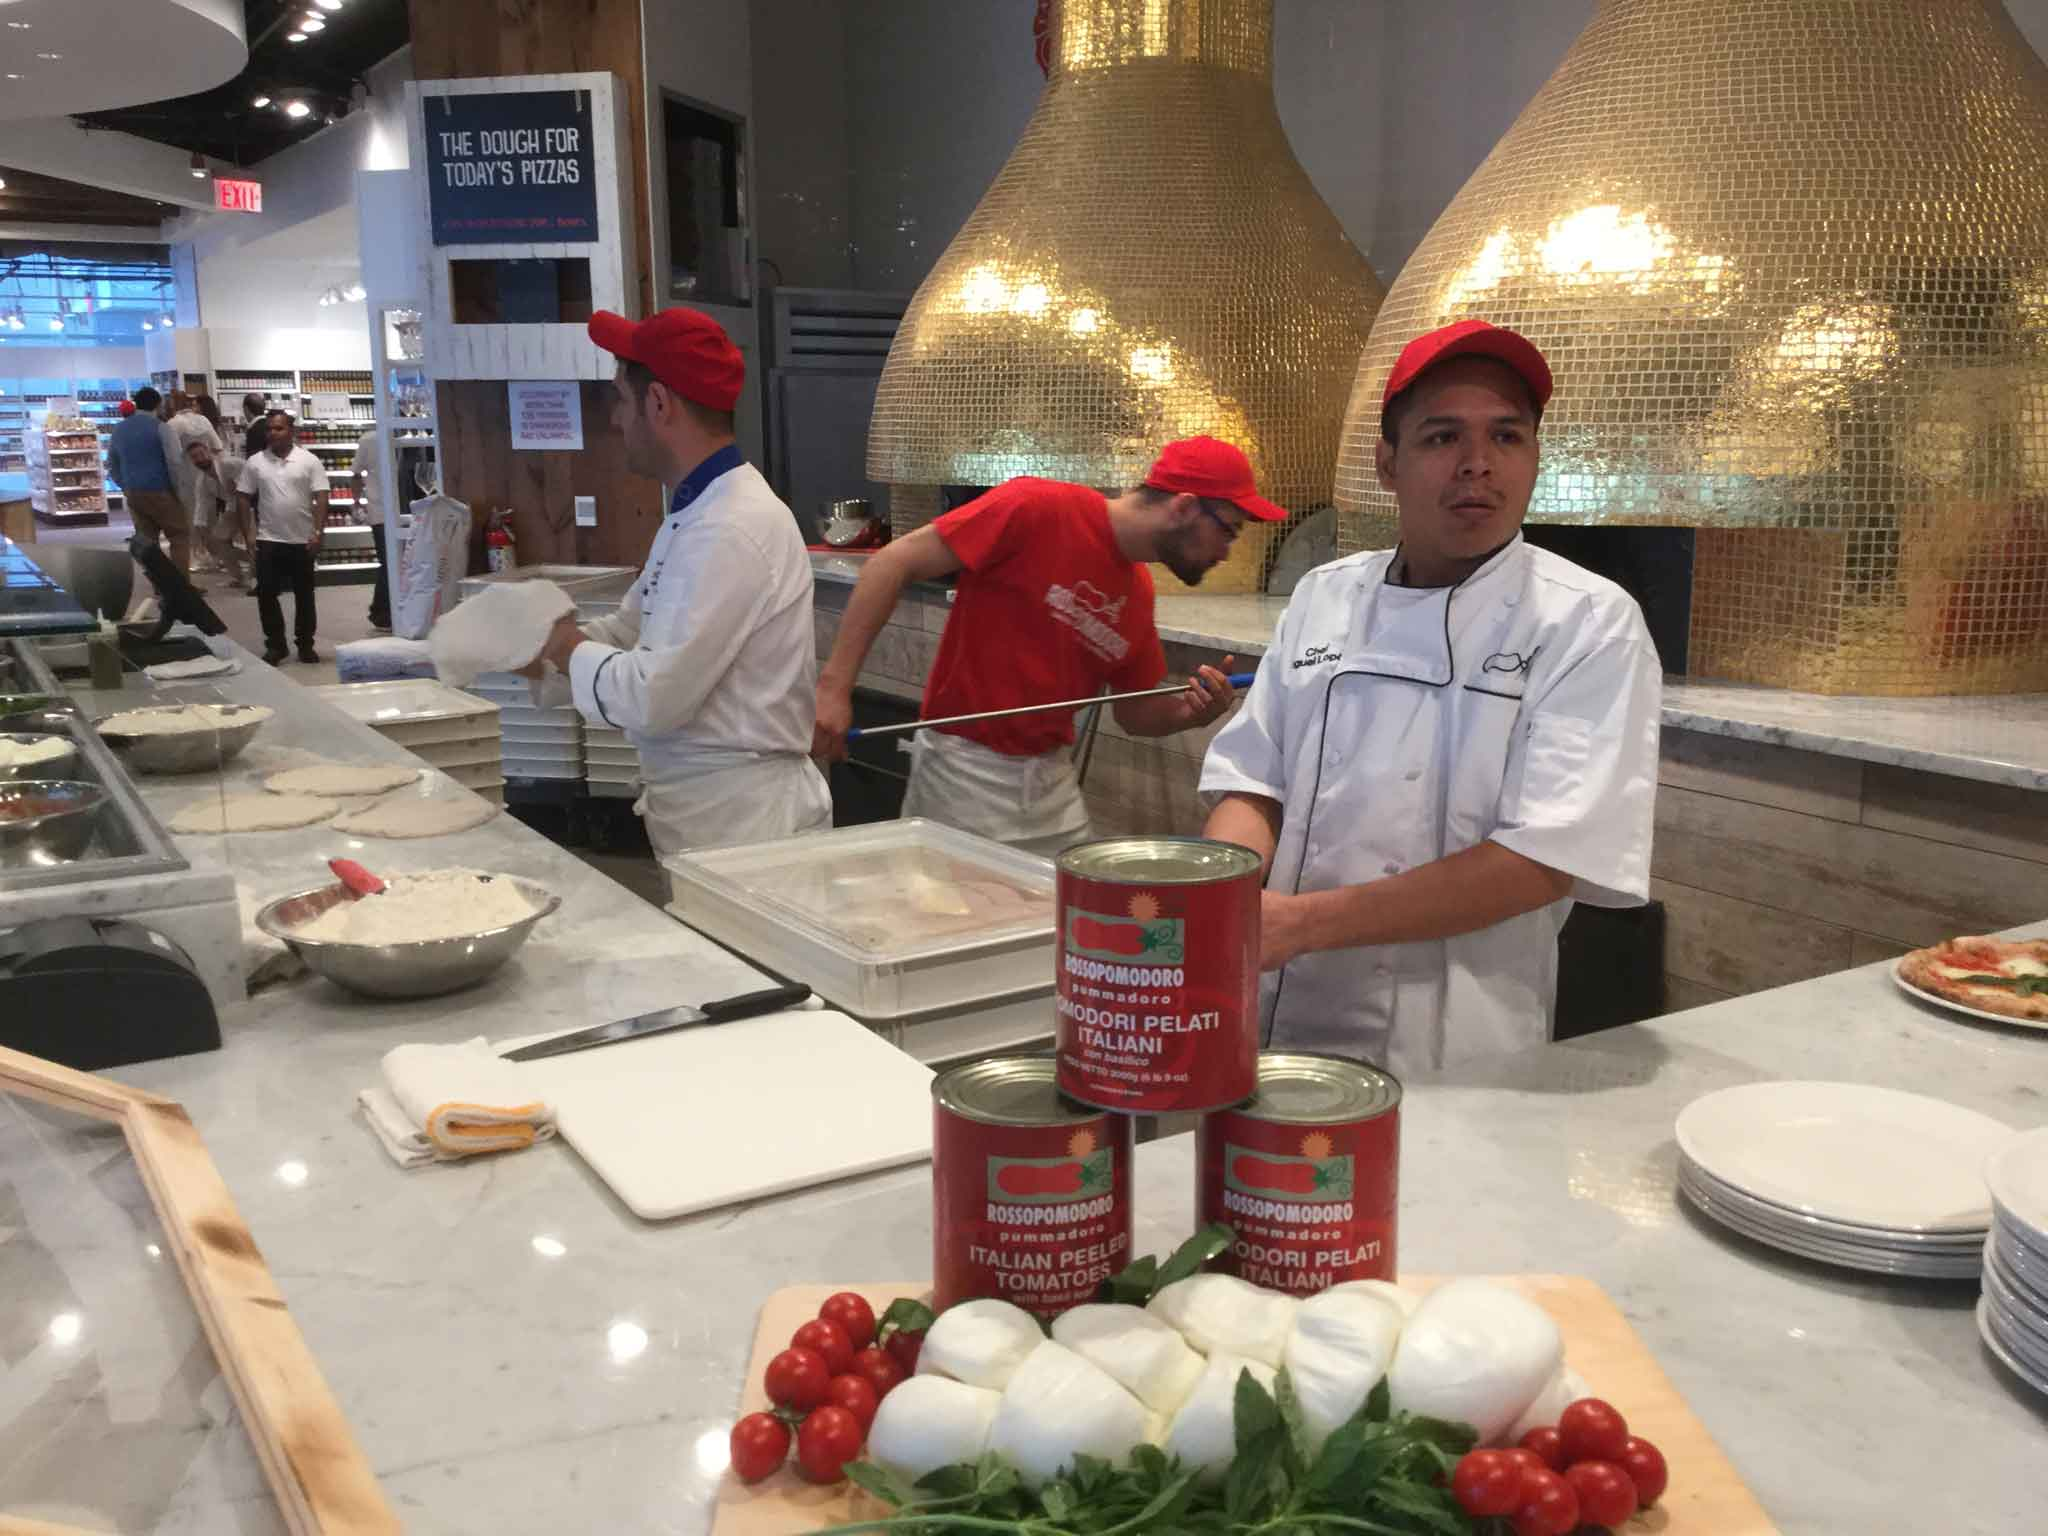 Eataly New York Downtown World Trade Center Tower pizza Rossopomodoro